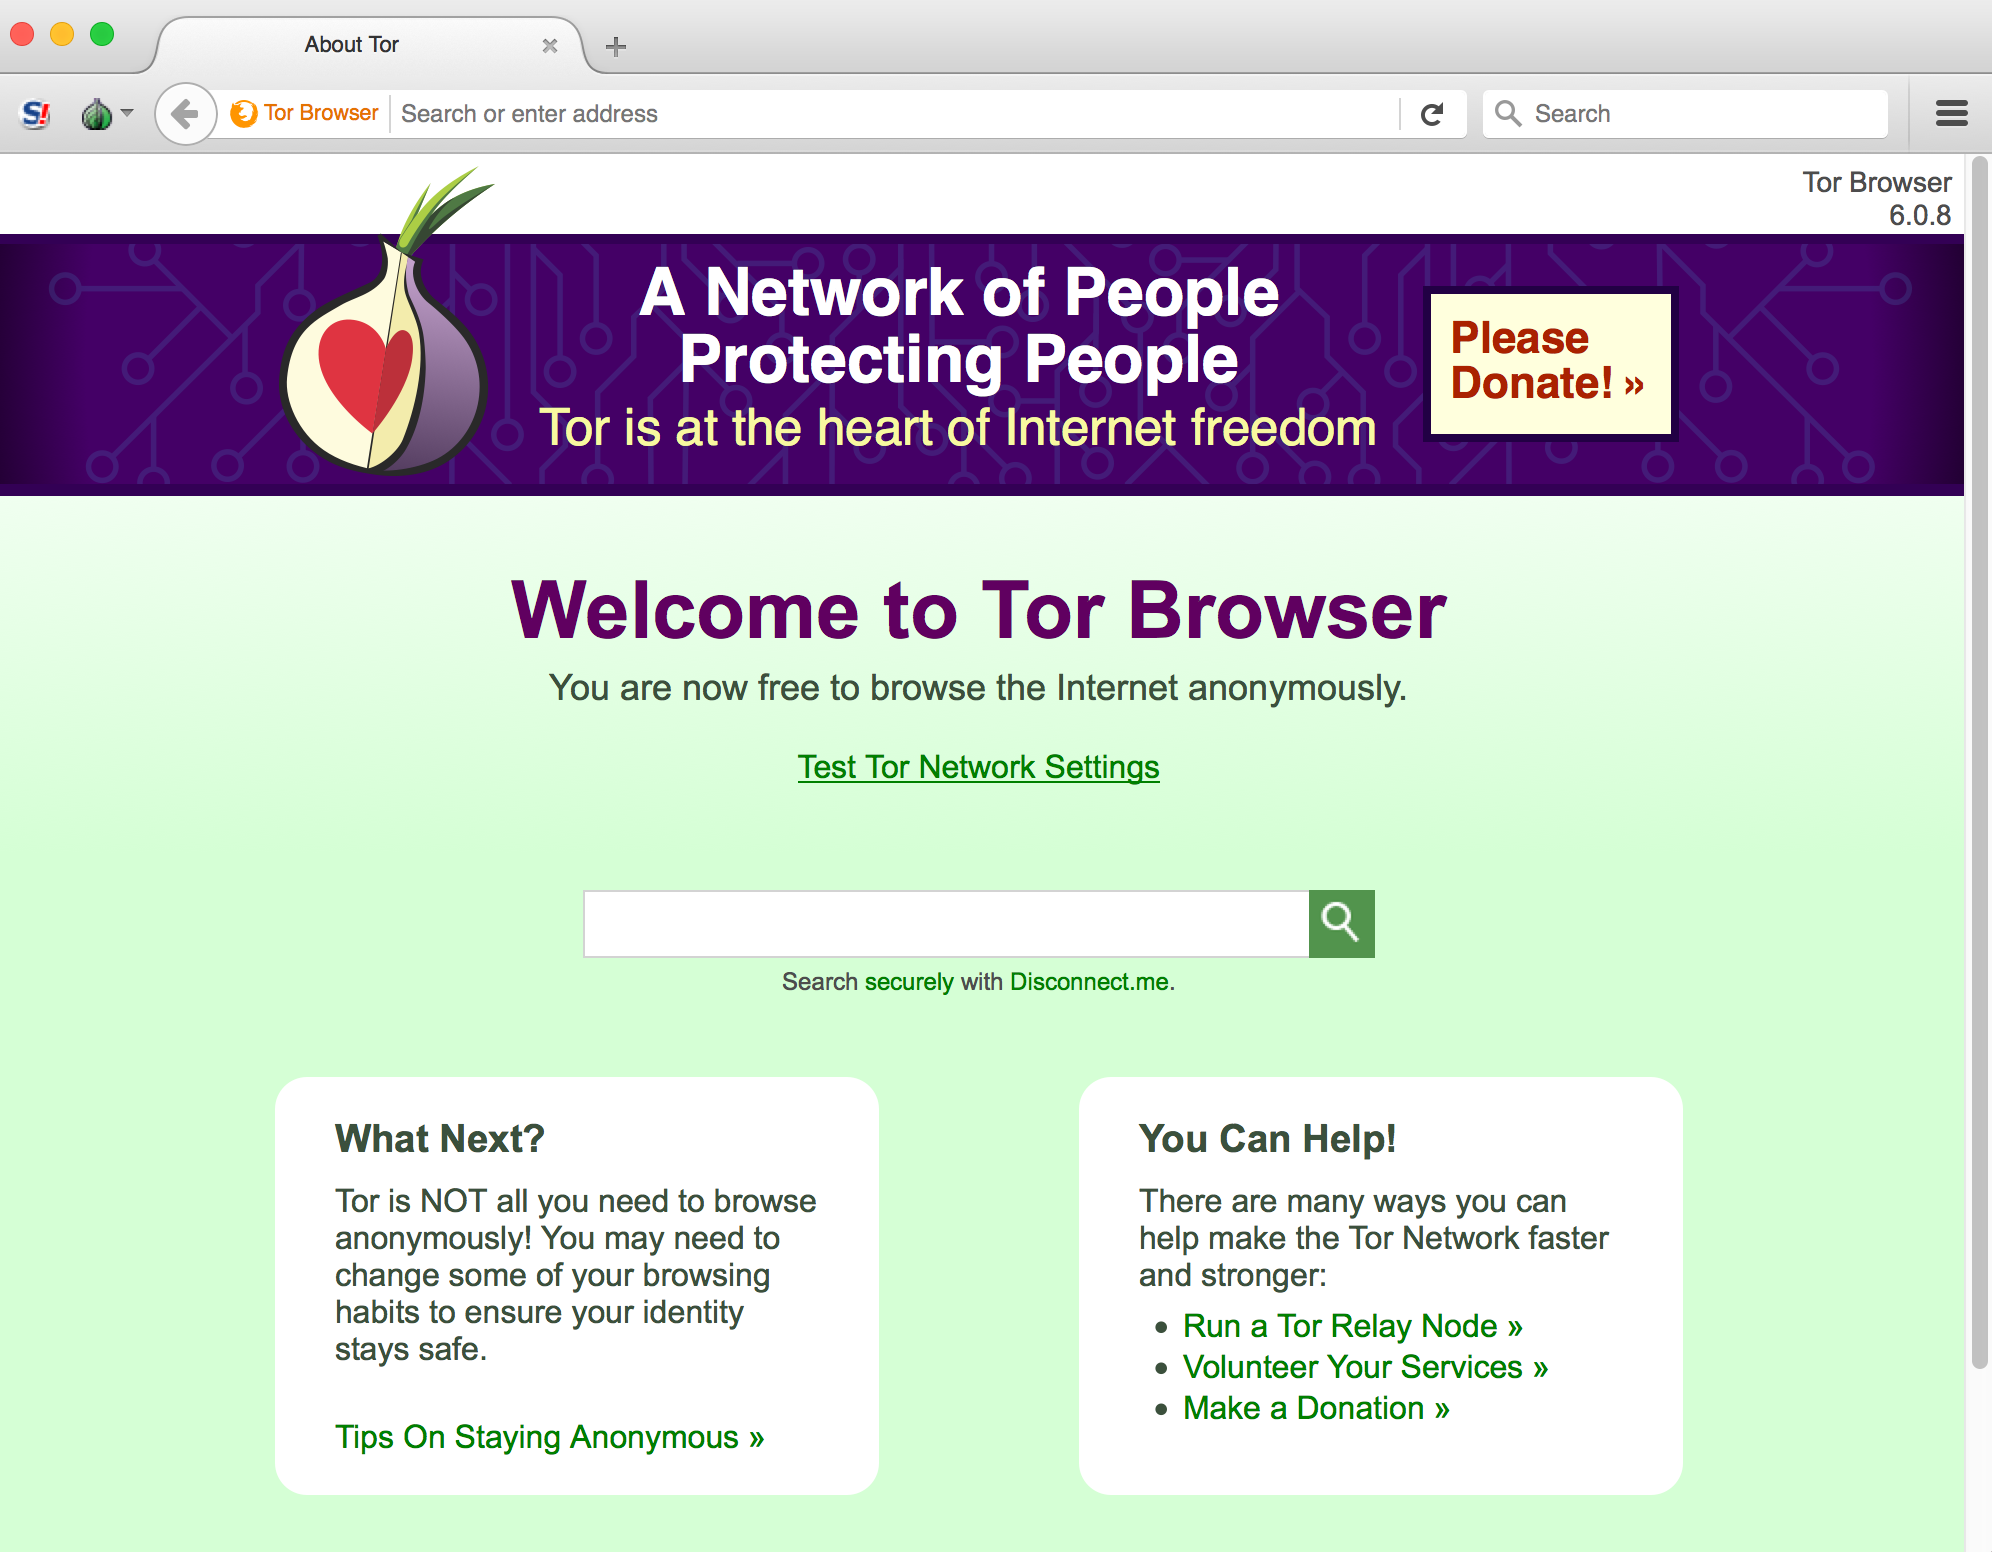 is the tor browser anonymous